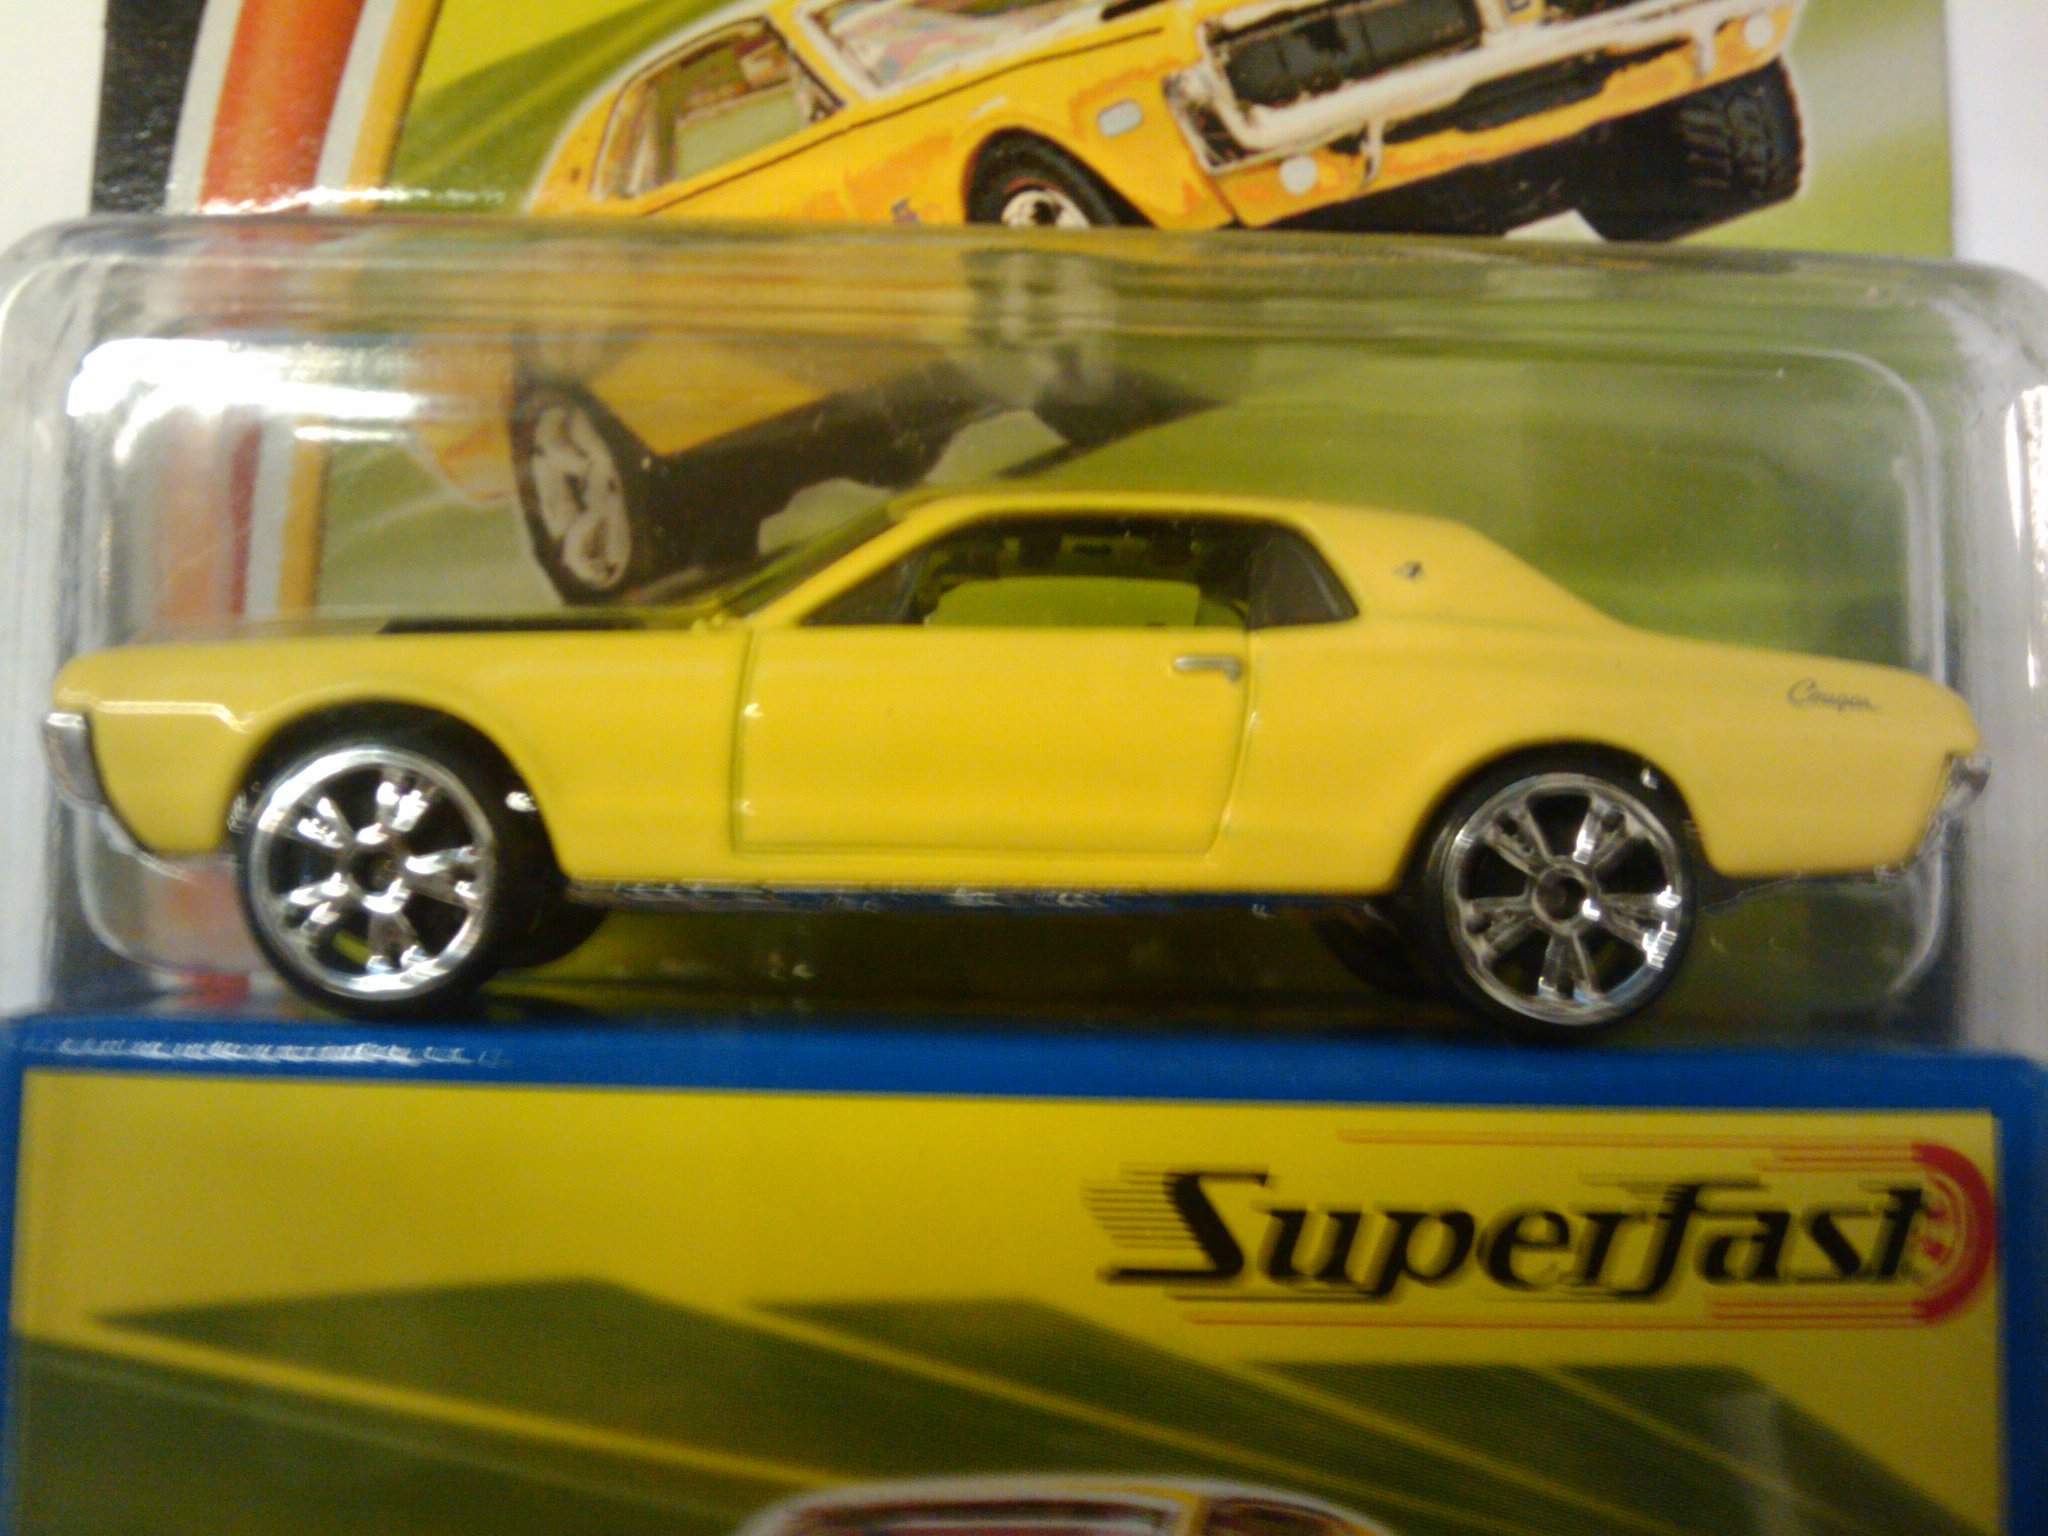 1968 Mercury Cougar Matchbox Cars Wiki Fandom Powered By Wikia 1960s H2338 China Superfast